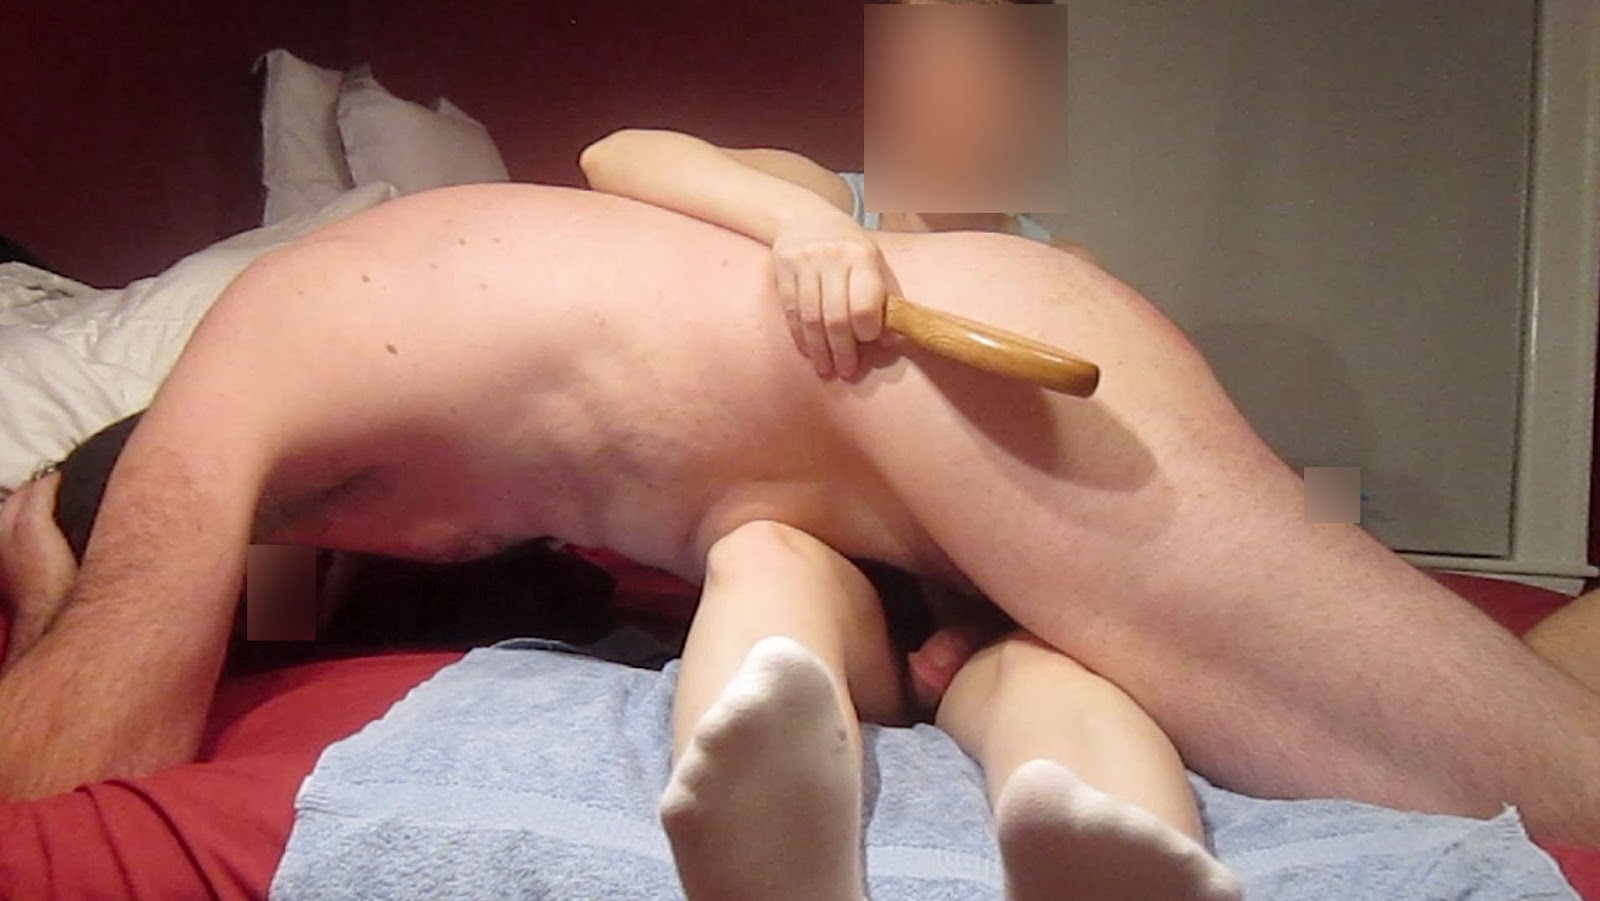 excercise-video-hard-dick-spank-masturbation-sleepingslut